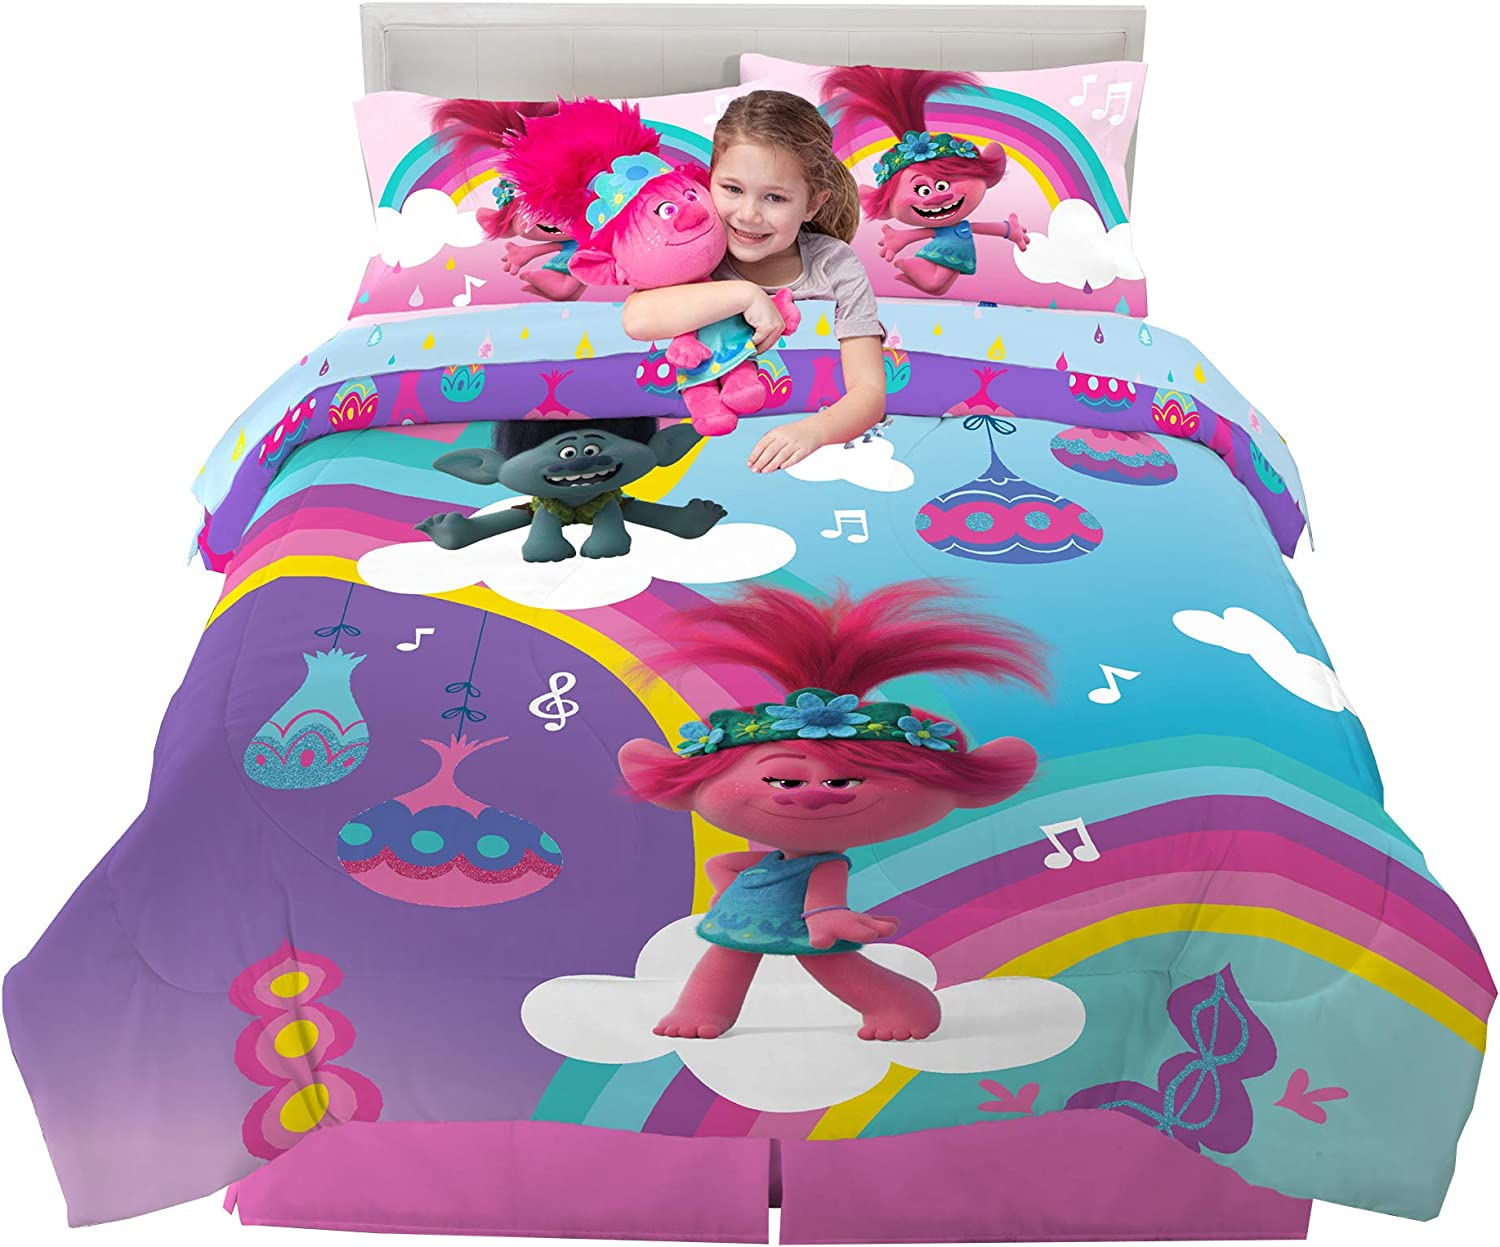 Franco Kids Bedding Super Soft Comforter with Sheets and Plush Cuddle Pillow Set, 6 Piece Full Size, Trolls World Tour